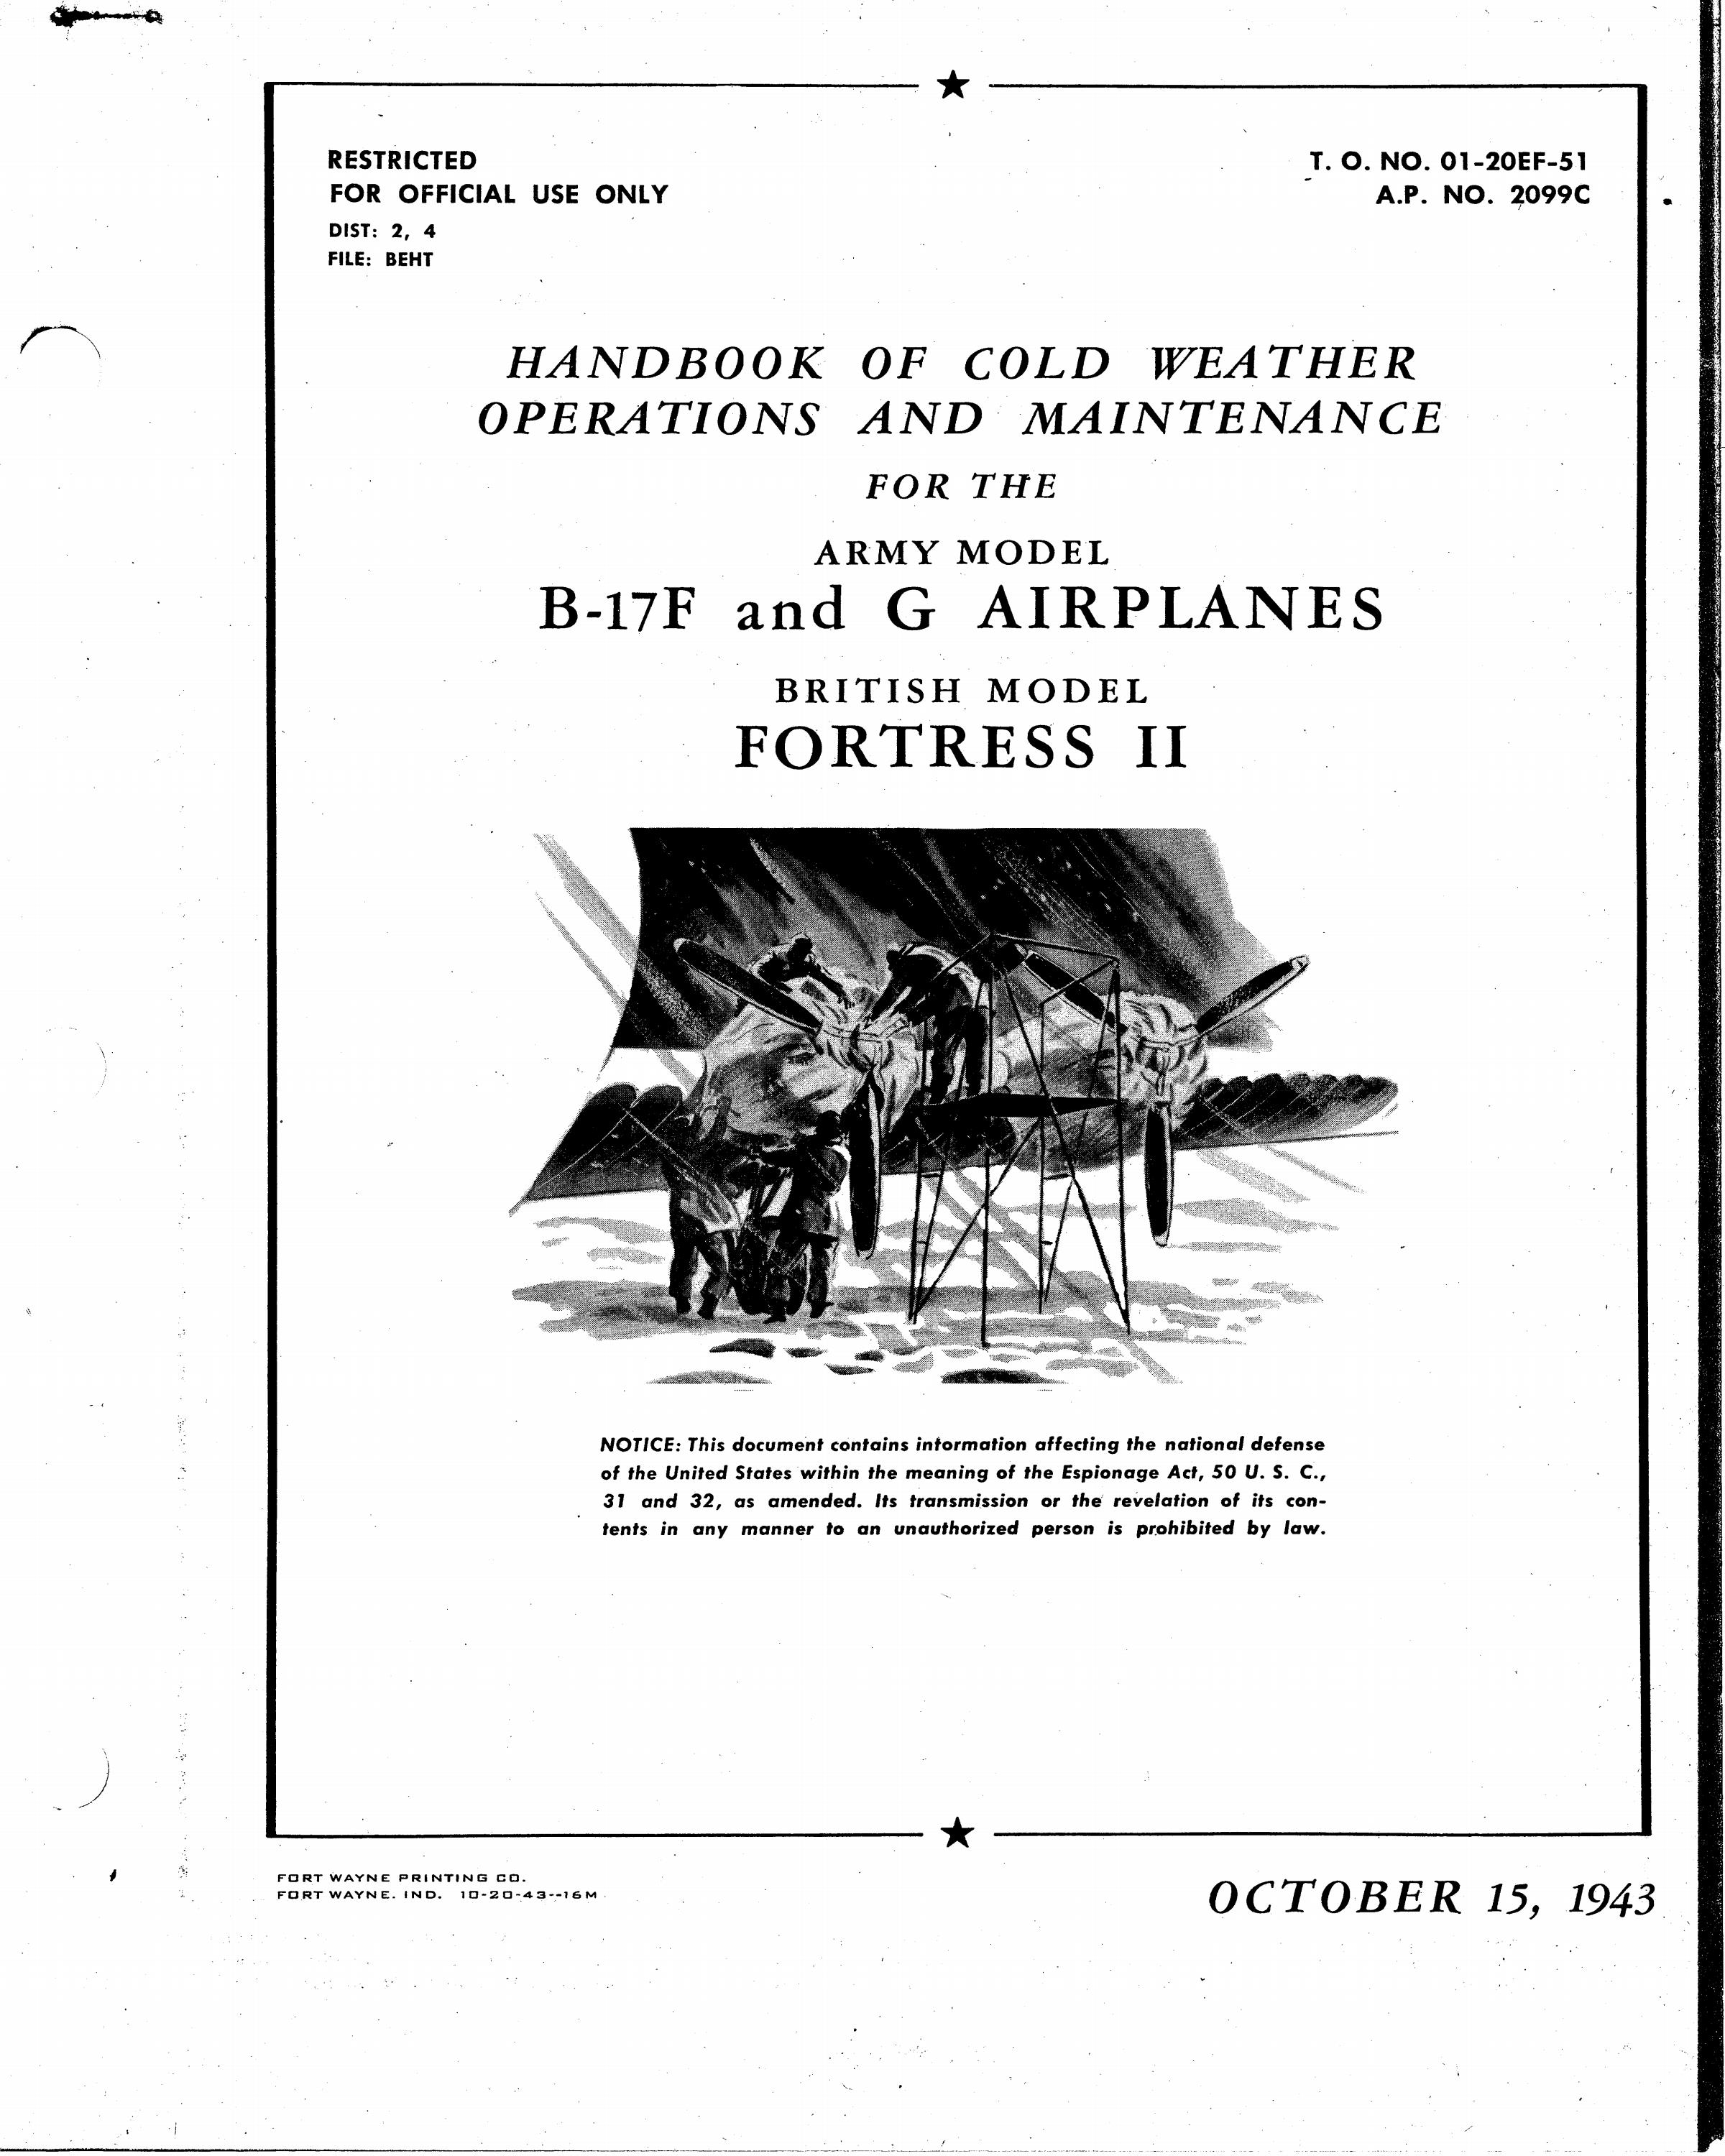 Sample page 1 from AirCorps Library document: Handbook of Cold Weather Operations & Maintenance - B17F, B-17G